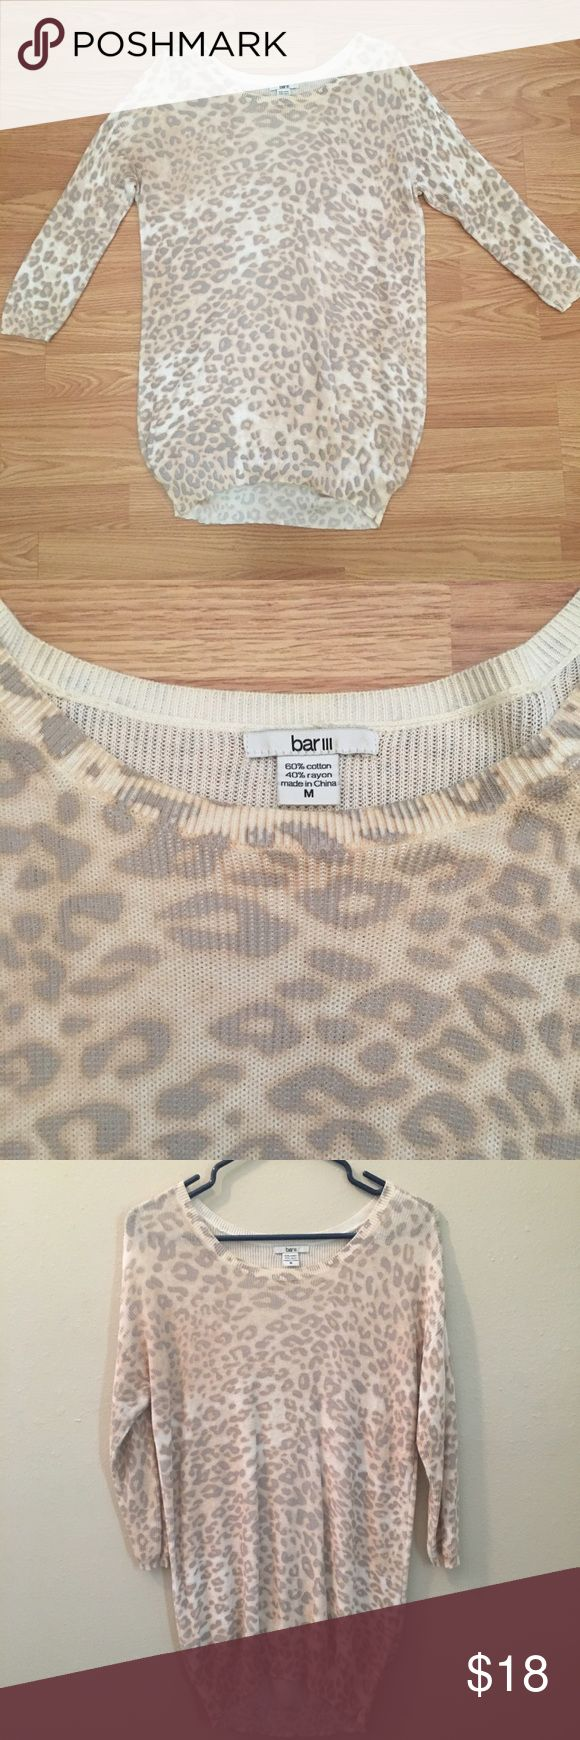 Snow leopard printed sweater by Bar III. Light weight snow leopard sweater by Bar III. Bar III Sweaters